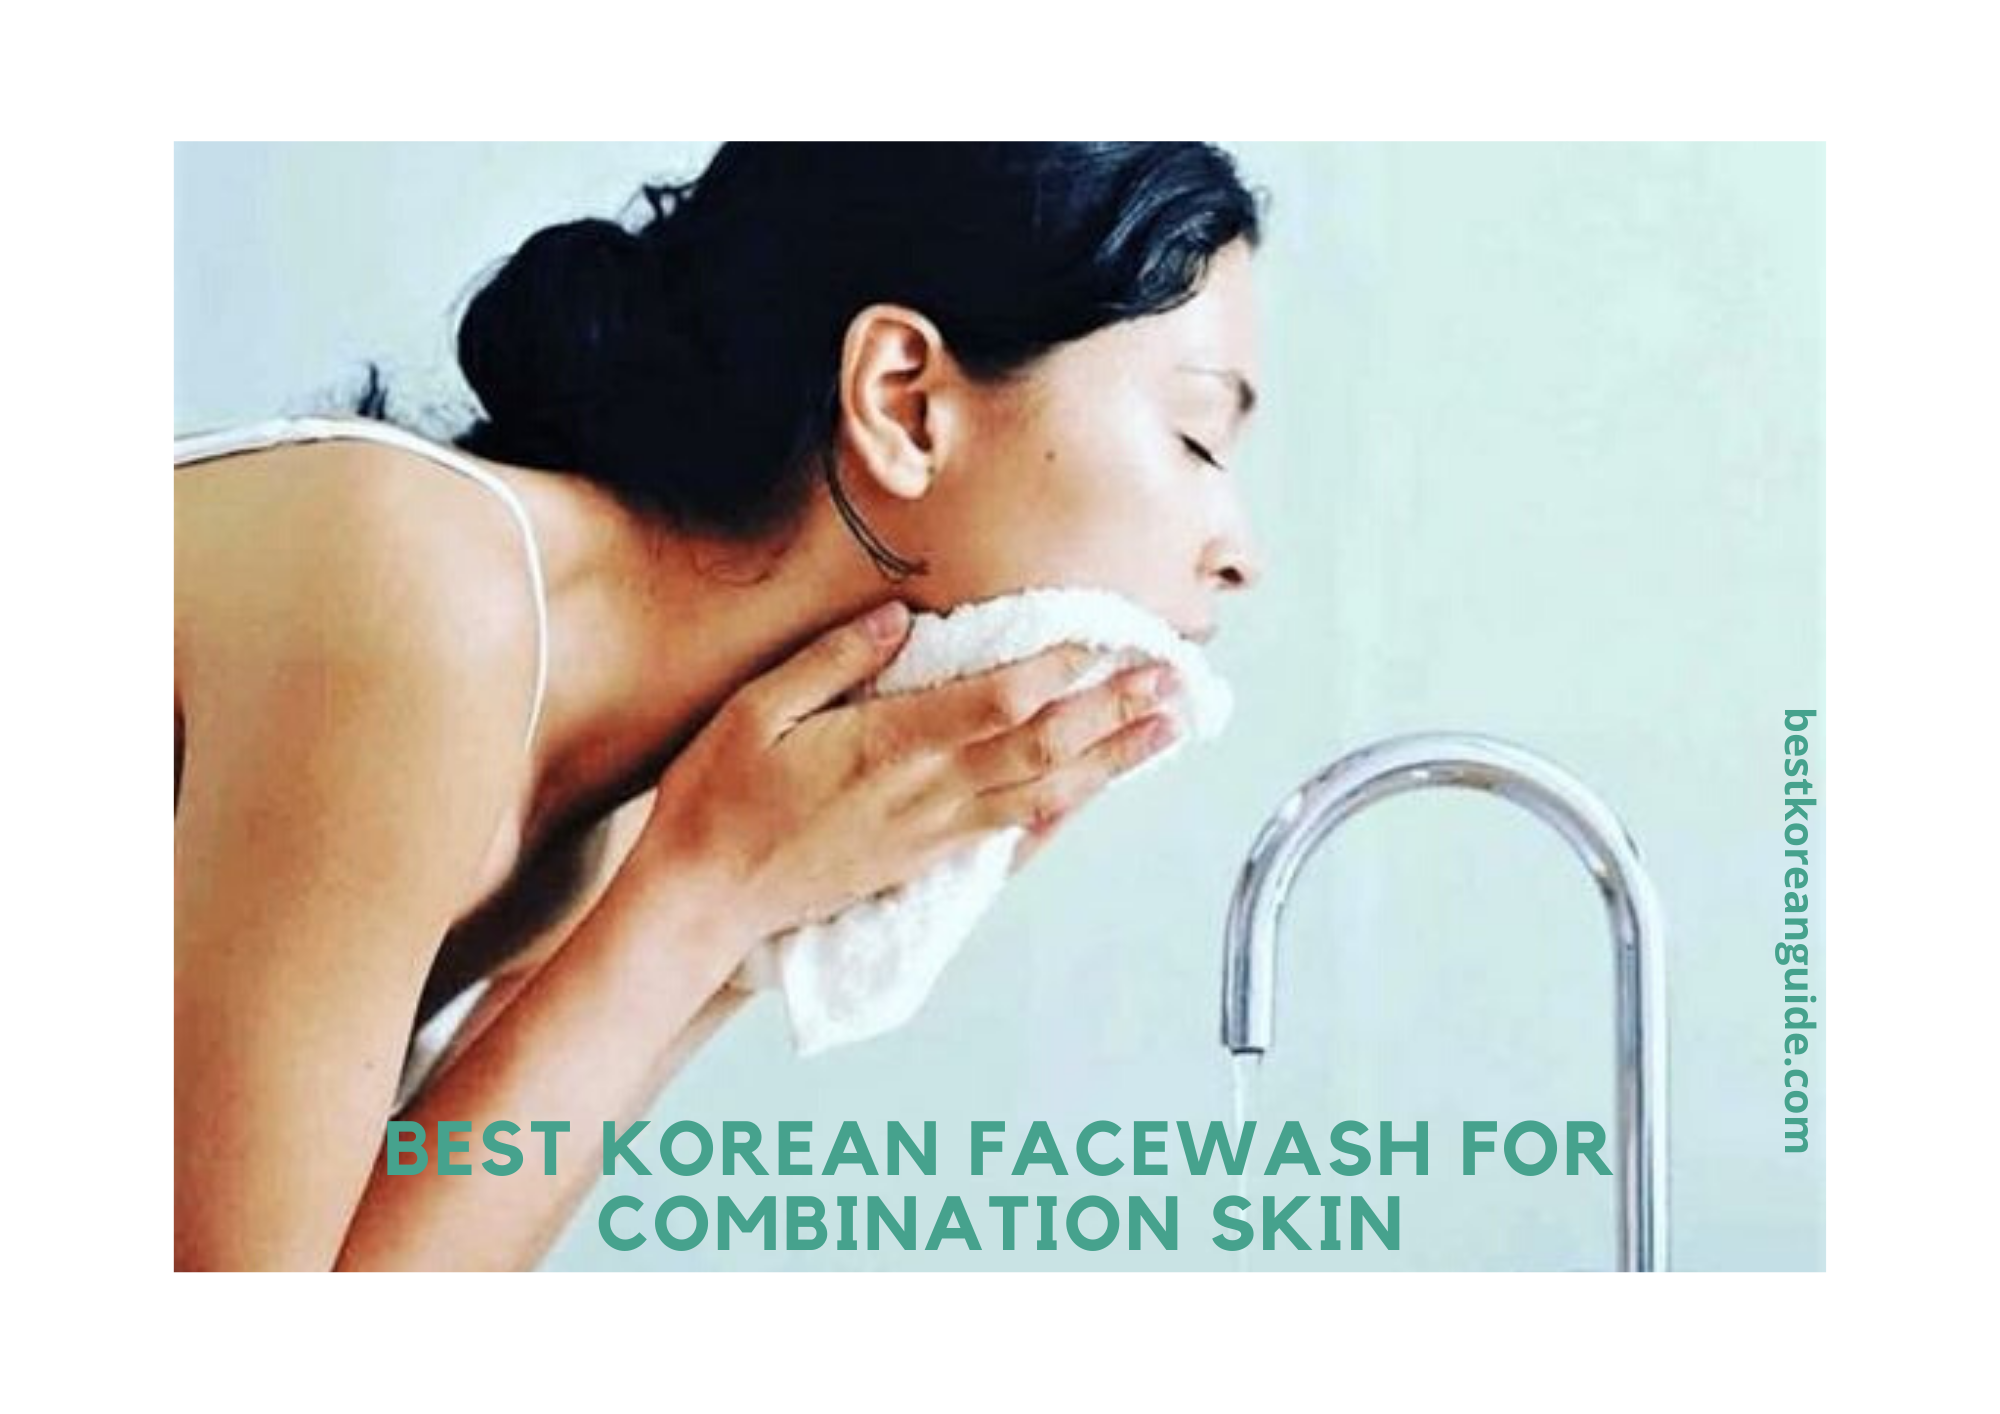 Best Korean facewash for combination skin